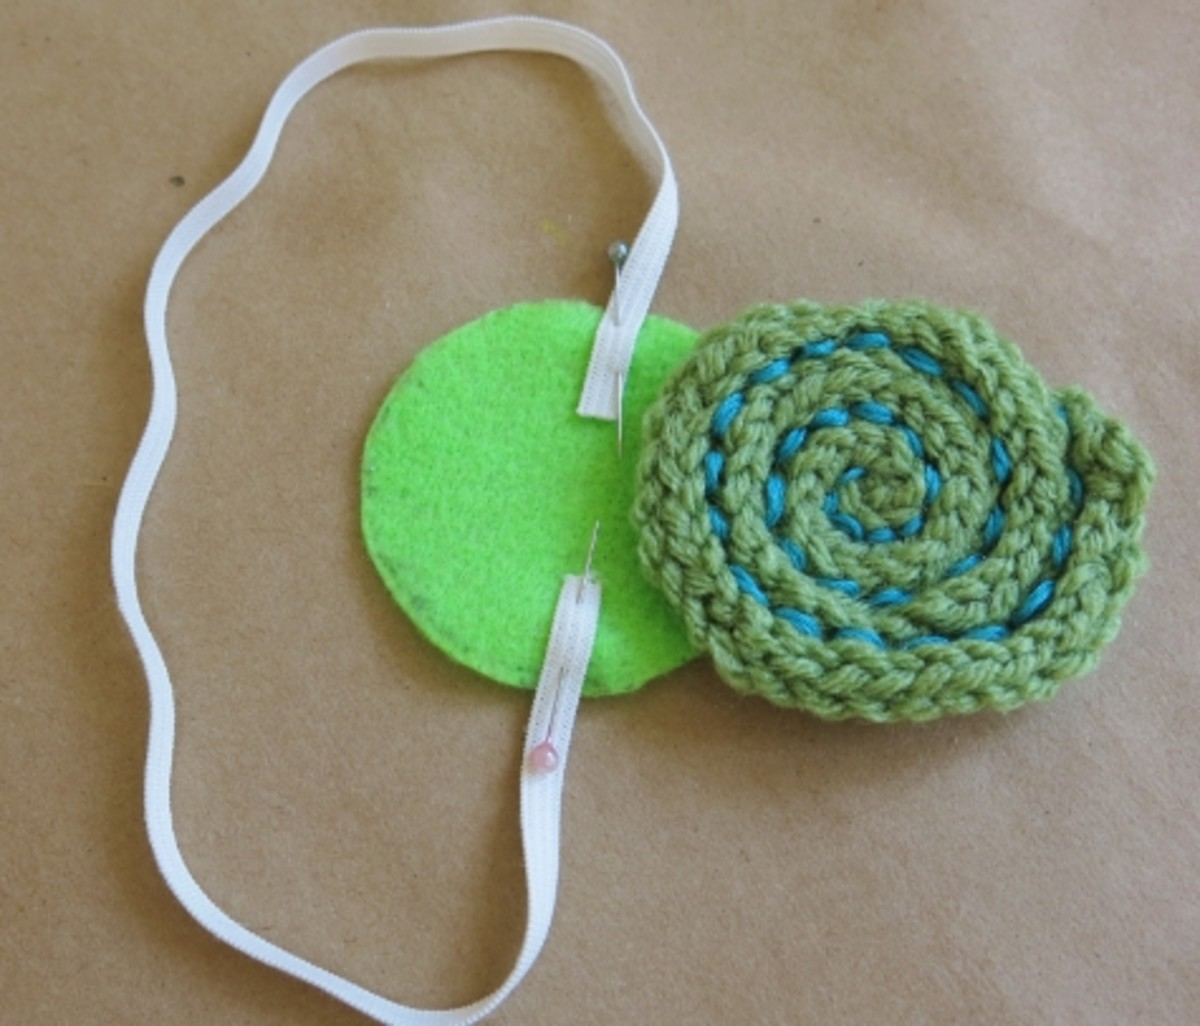 Assembling your knitted yarn ball bookmark